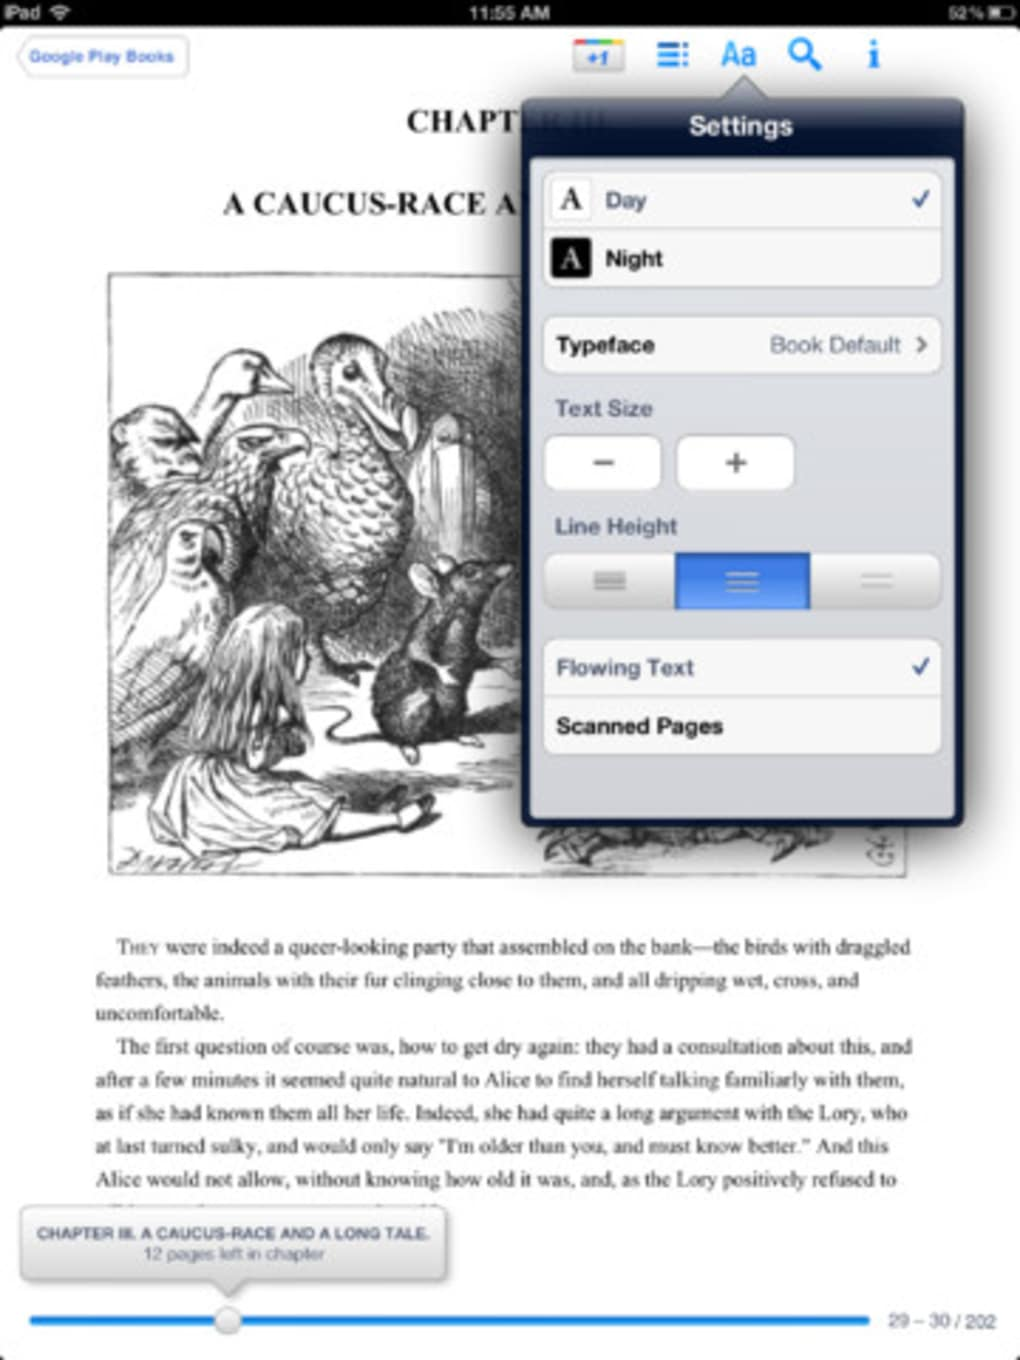 Google Play Books for iPhone - Download